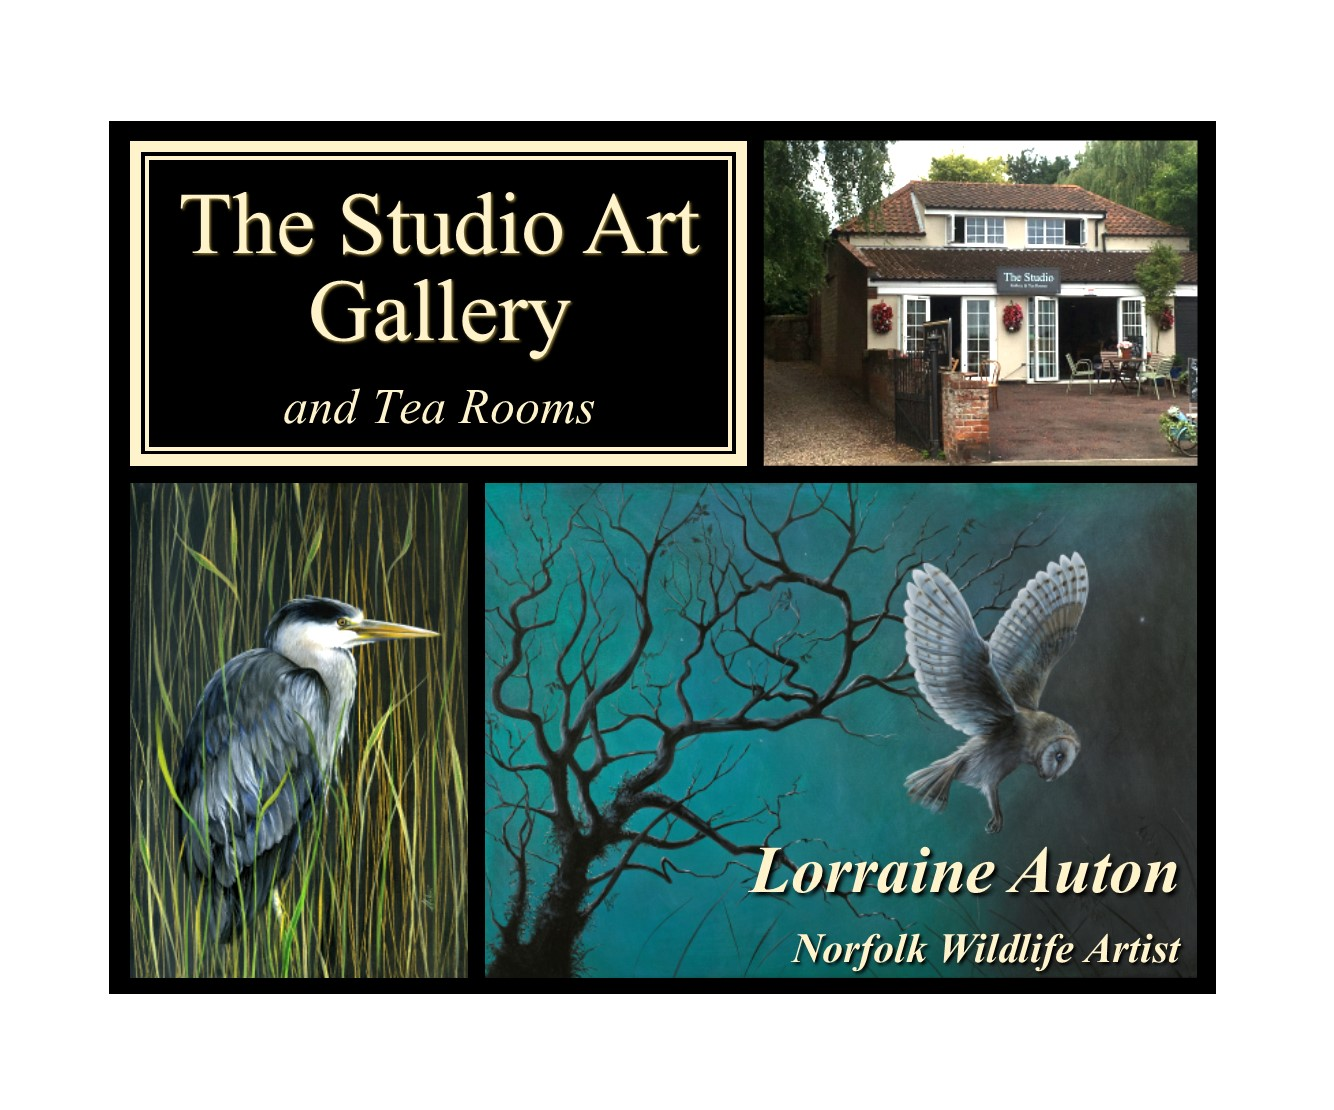 The Studio Art Gallery, Acle - The Gallery exhibits a range of high quality contemporary and traditional artwork by local Norfolk artists, with new exhibitions every month.A selection of gifts, bronzes, jewellery, prints and cards is also available.Tea, cake and light lunches are served in the relaxed and cosy atmosphere of the adjoining Tea Rooms.The Street, Acle, Norwich, NR13 3DY 01493 751974